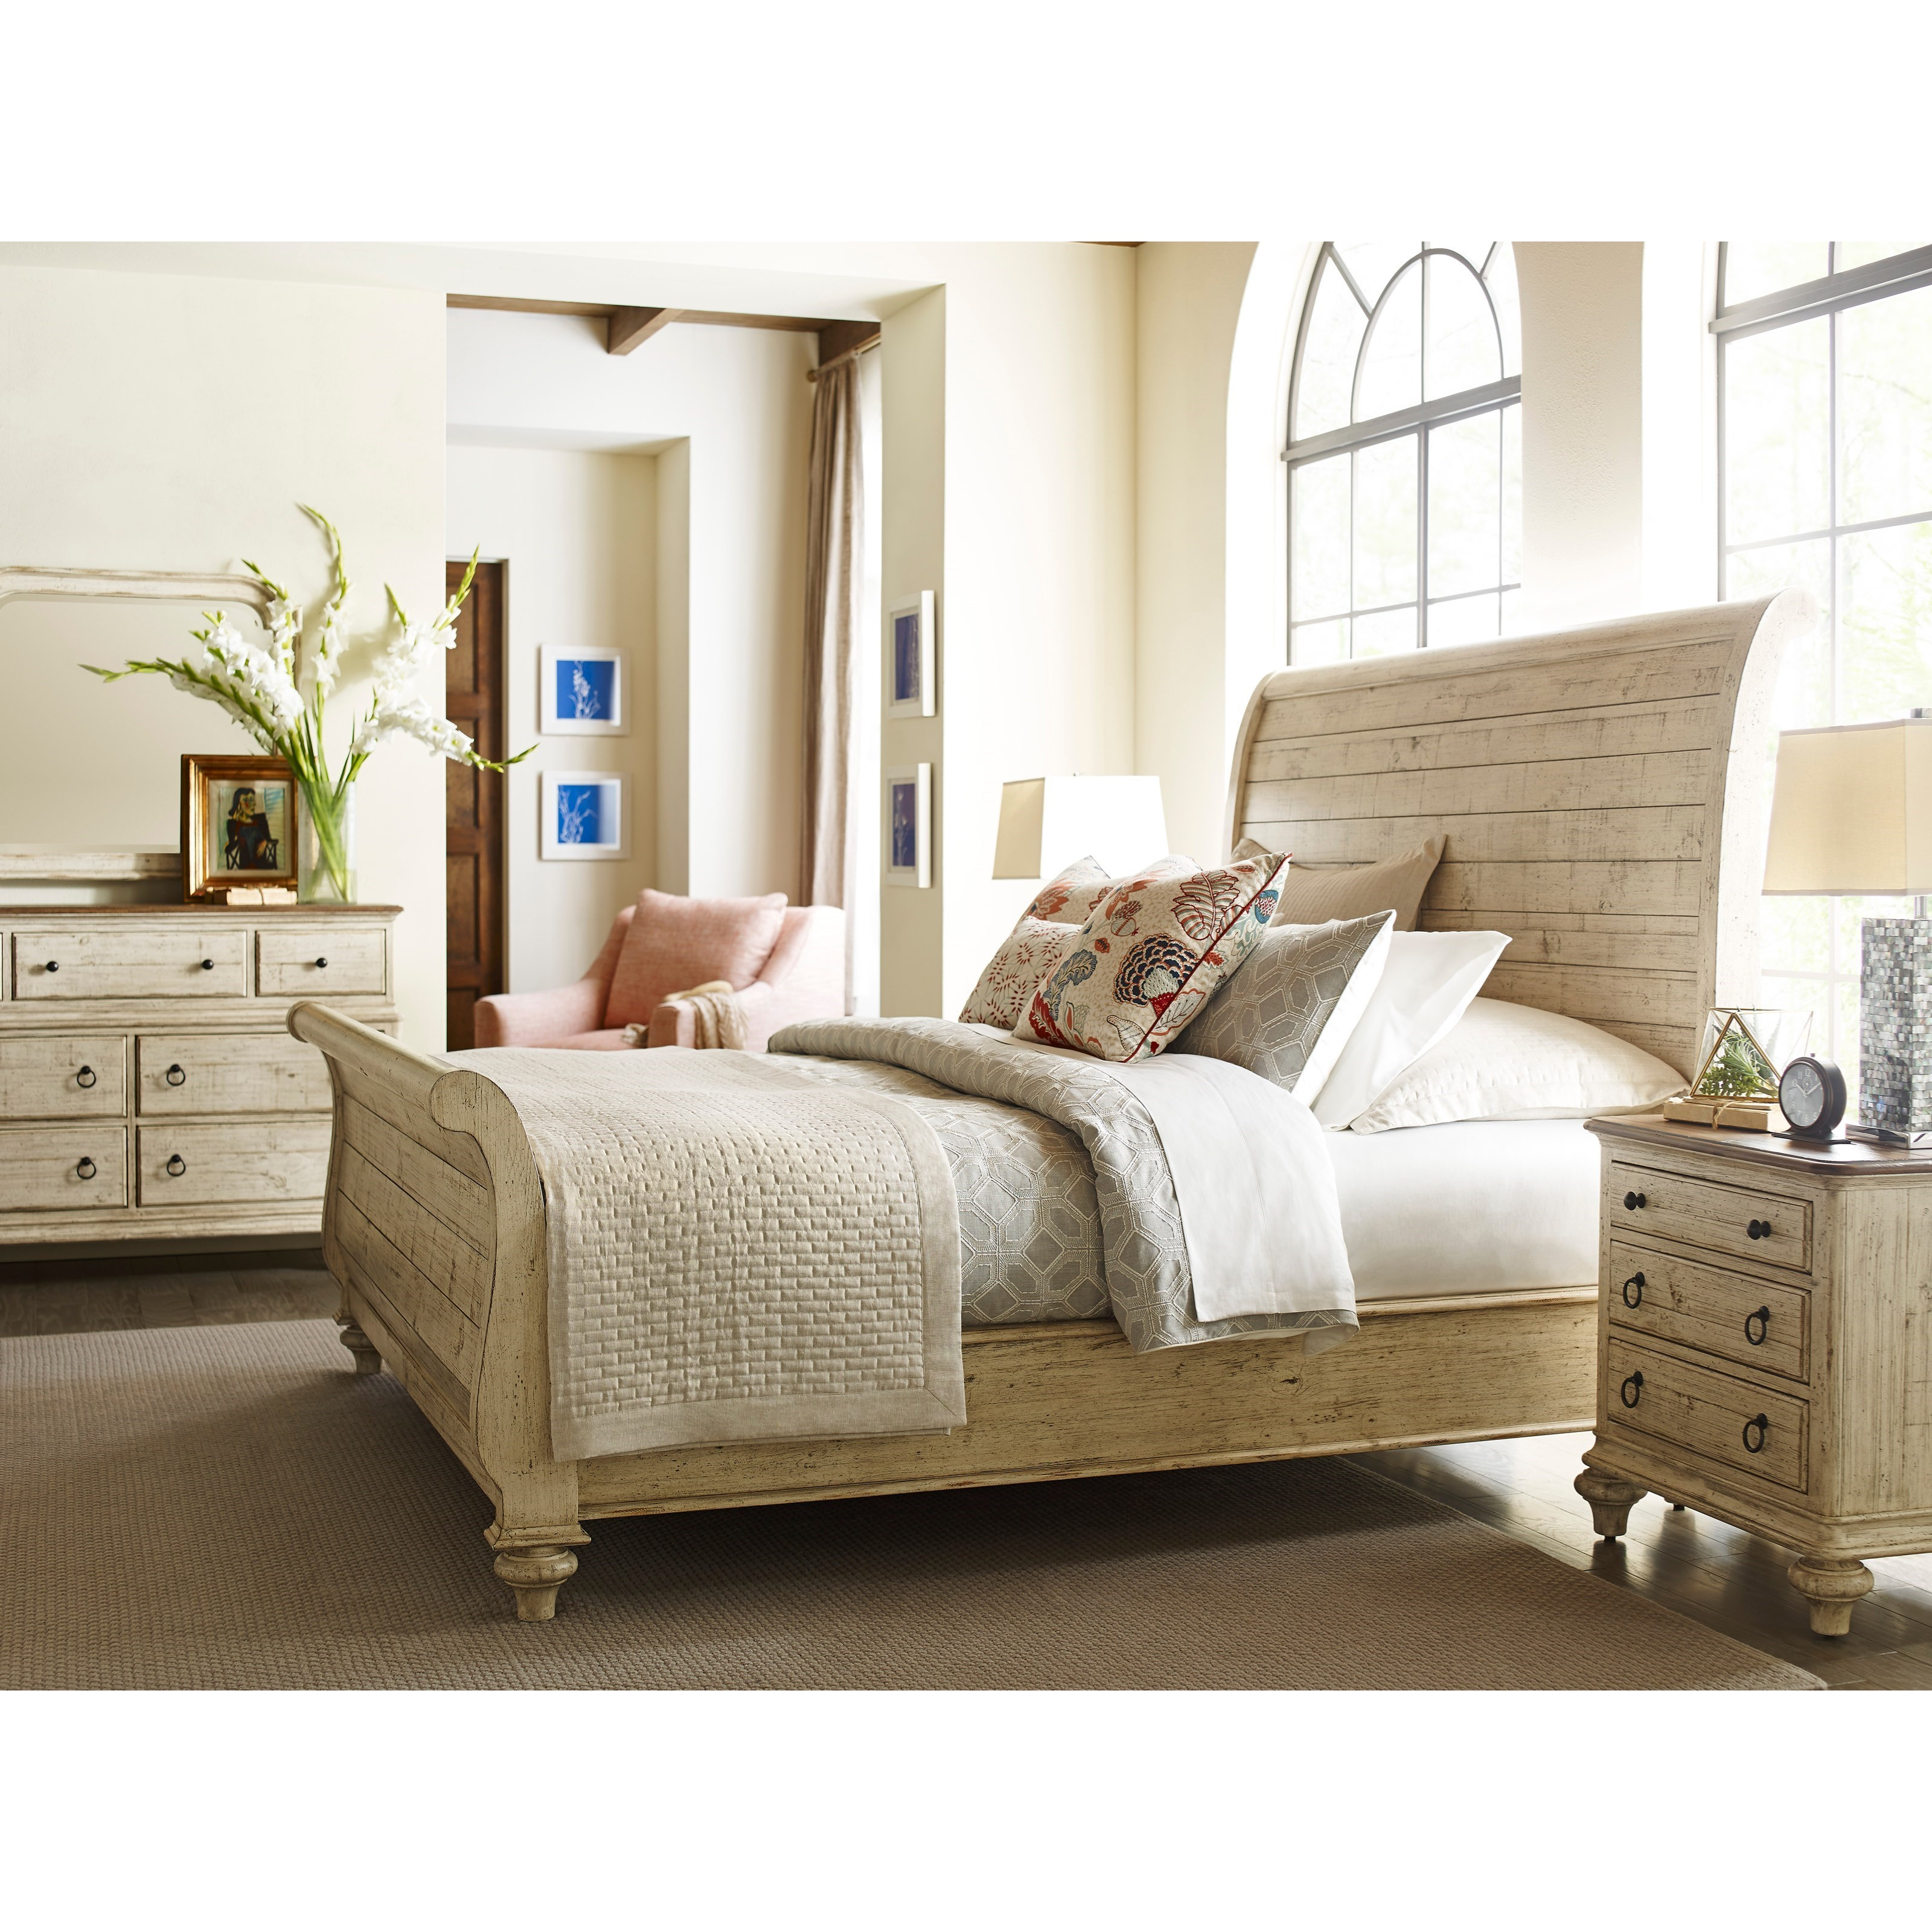 Lynton Sleigh Bed King Size By Kincaid Furniture Wolf And Gardiner Wolf Furniture